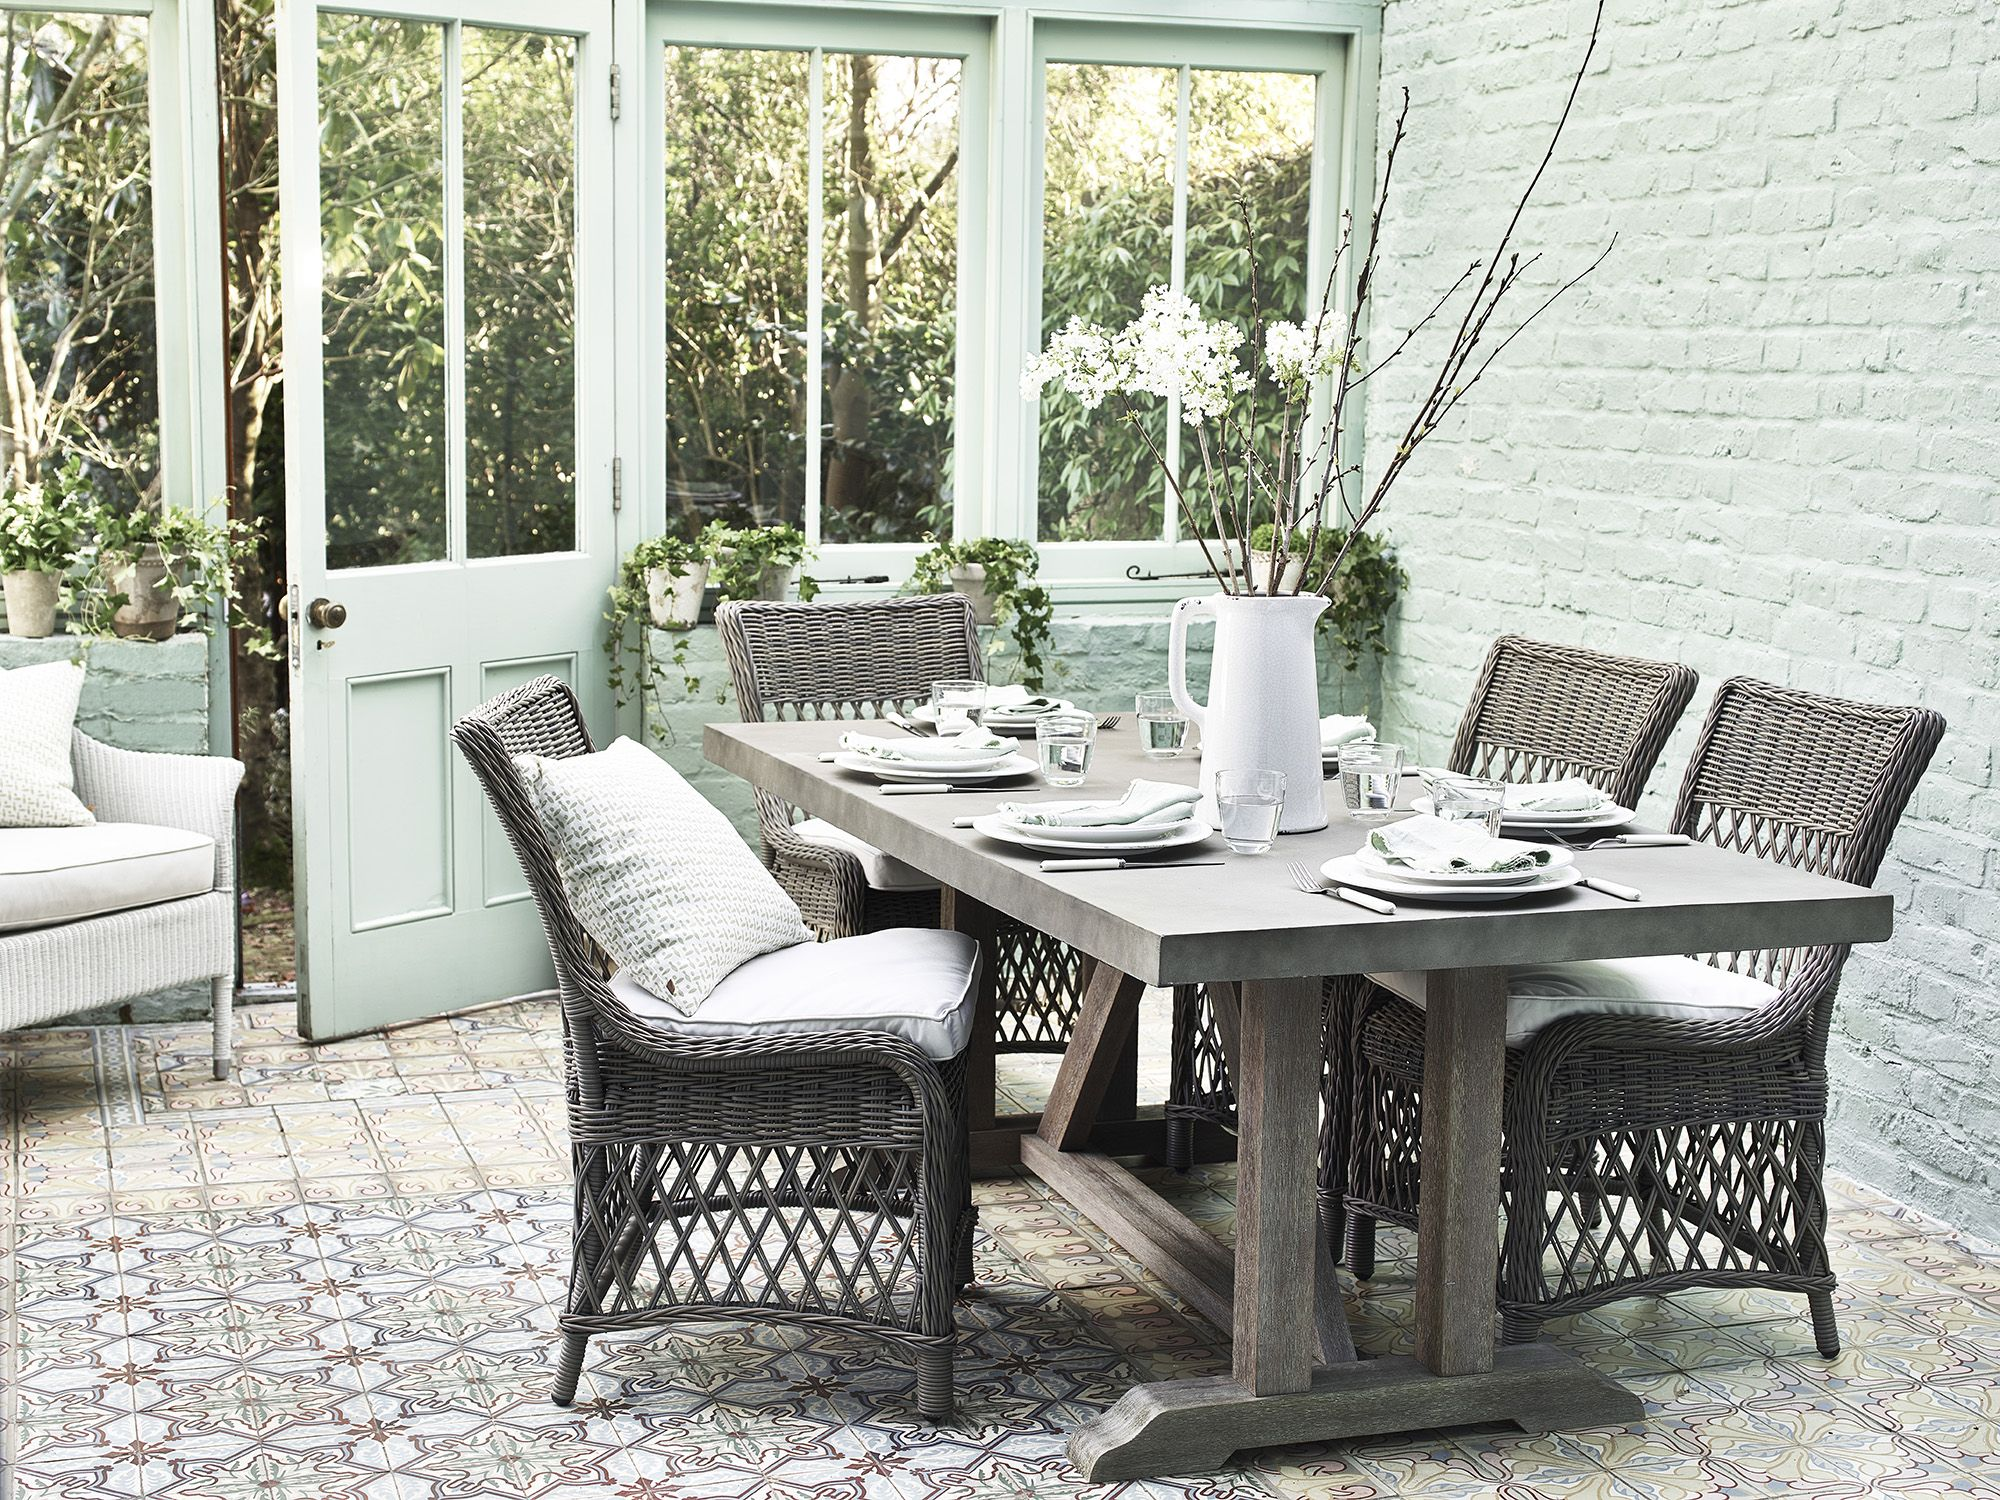 Neptune Hudson table and Harrington chairs  Garden furniture